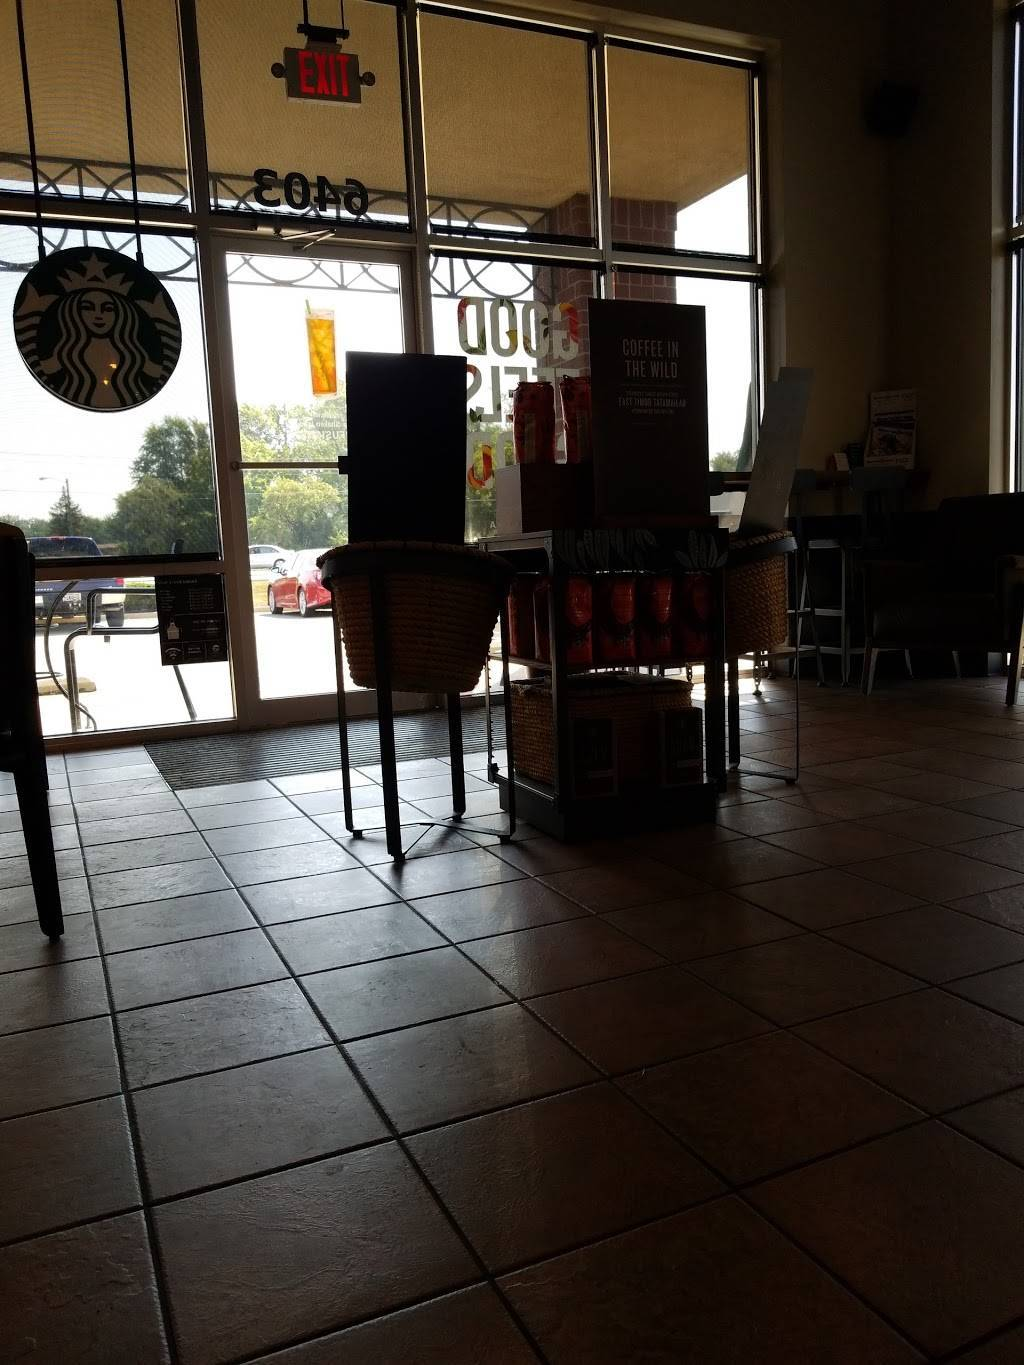 Starbucks | cafe | 6403 Lima Rd, Fort Wayne, IN 46818, USA | 2604908107 OR +1 260-490-8107